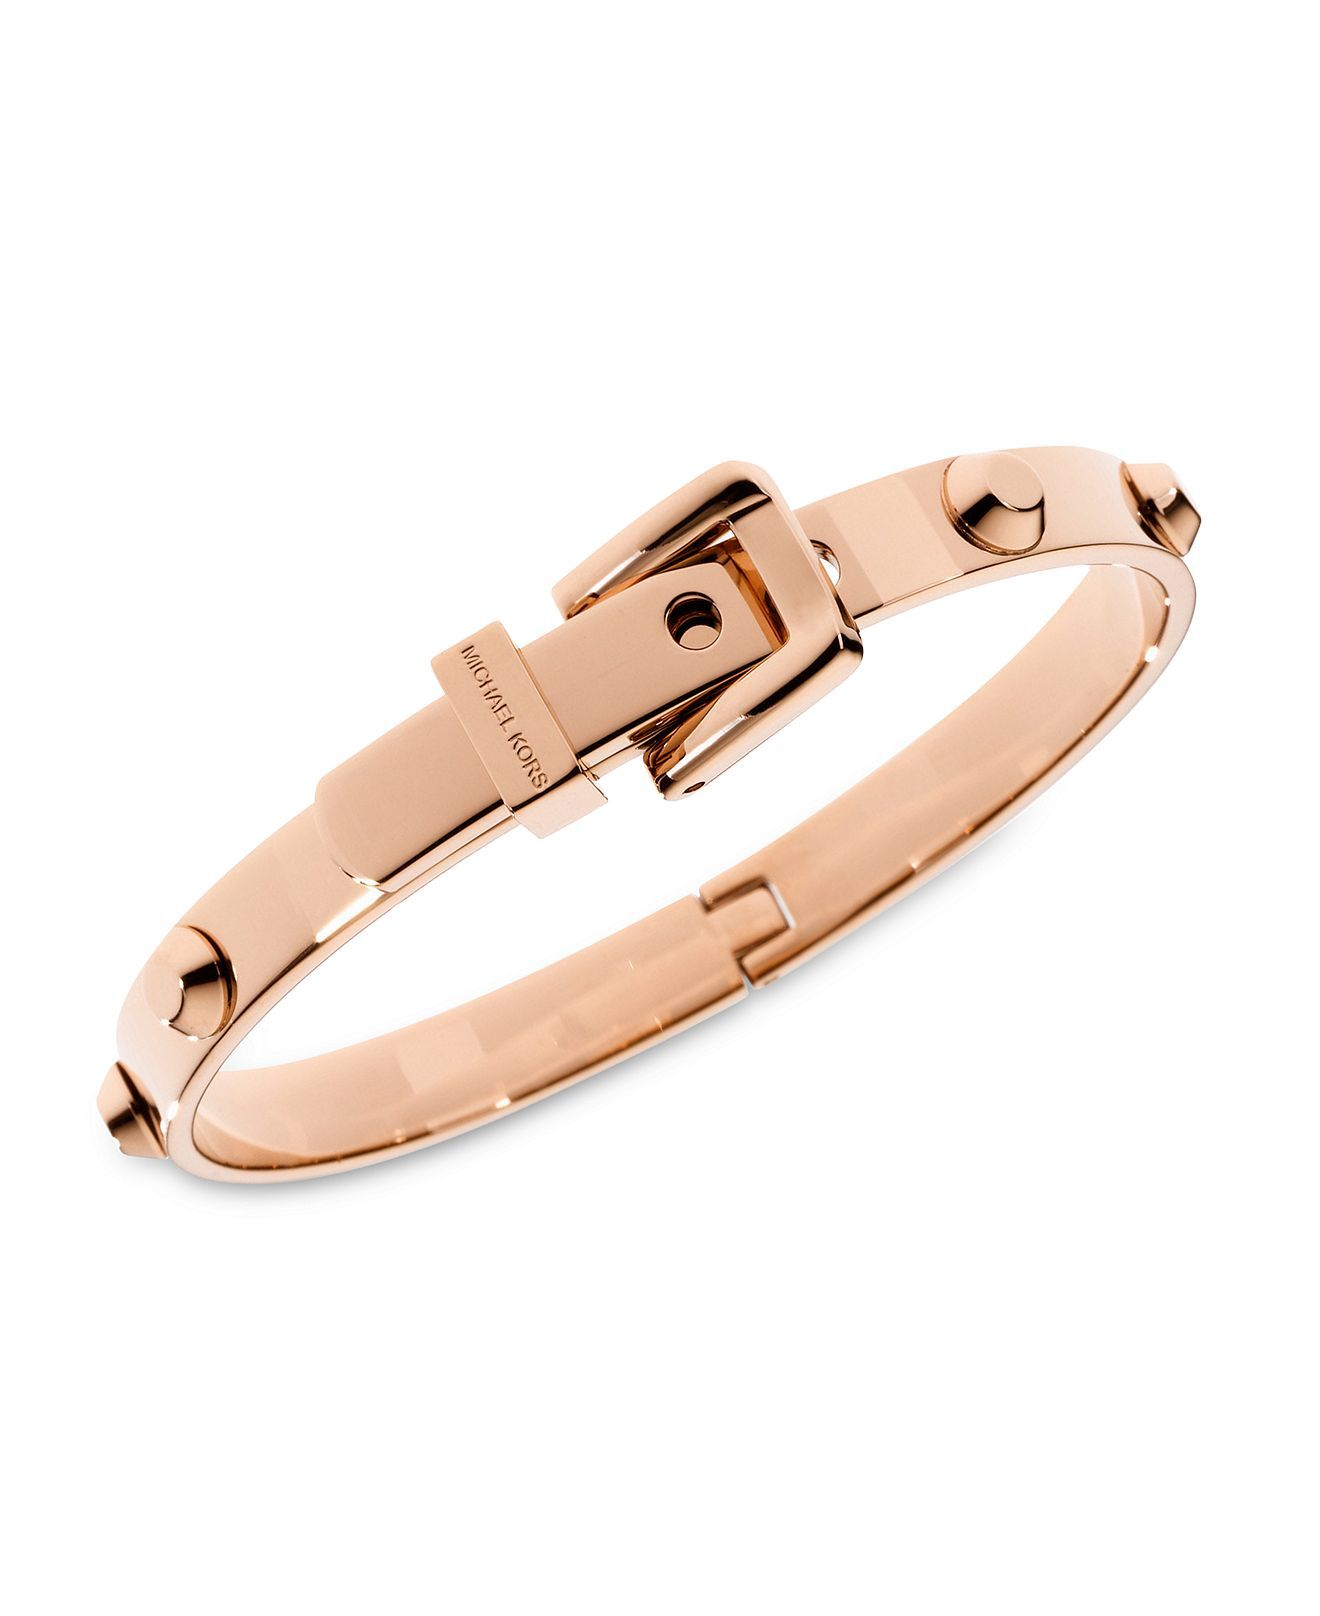 Michael kors bracelet rose gold tone steel buckle bangle for Macy s jewelry clearance